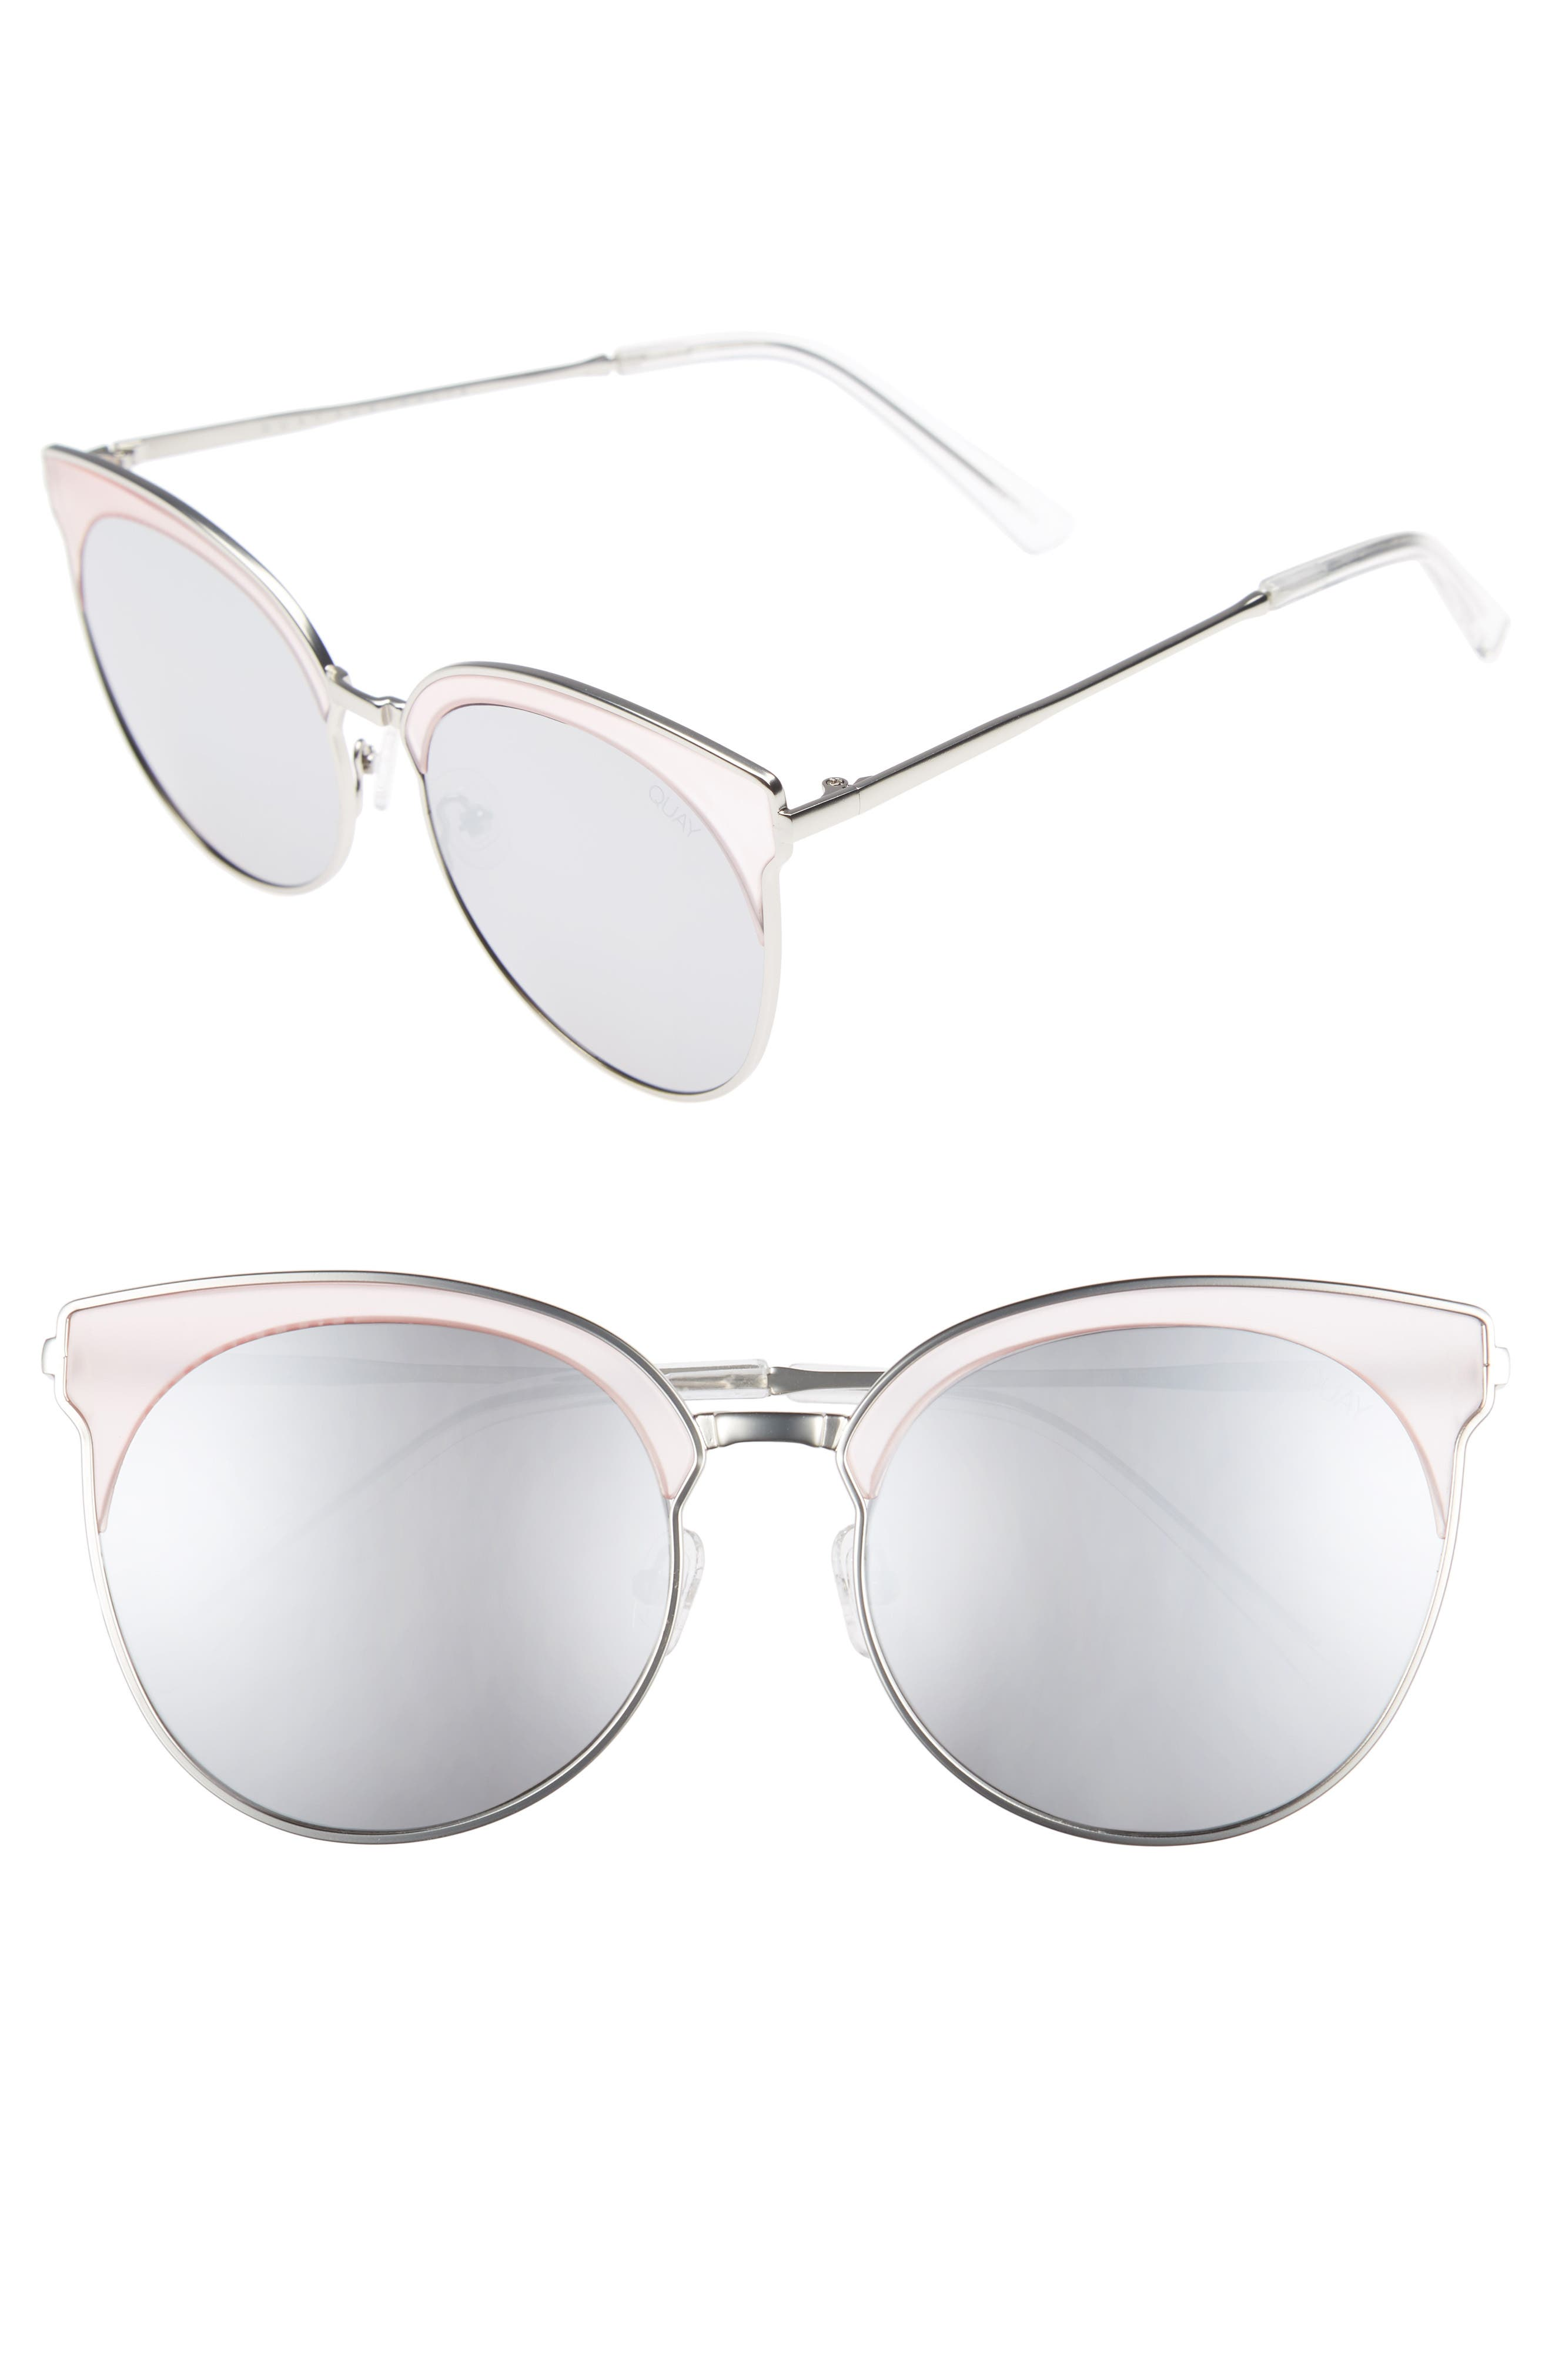 Quay Australia Mia Bella 56mm Sunglasses